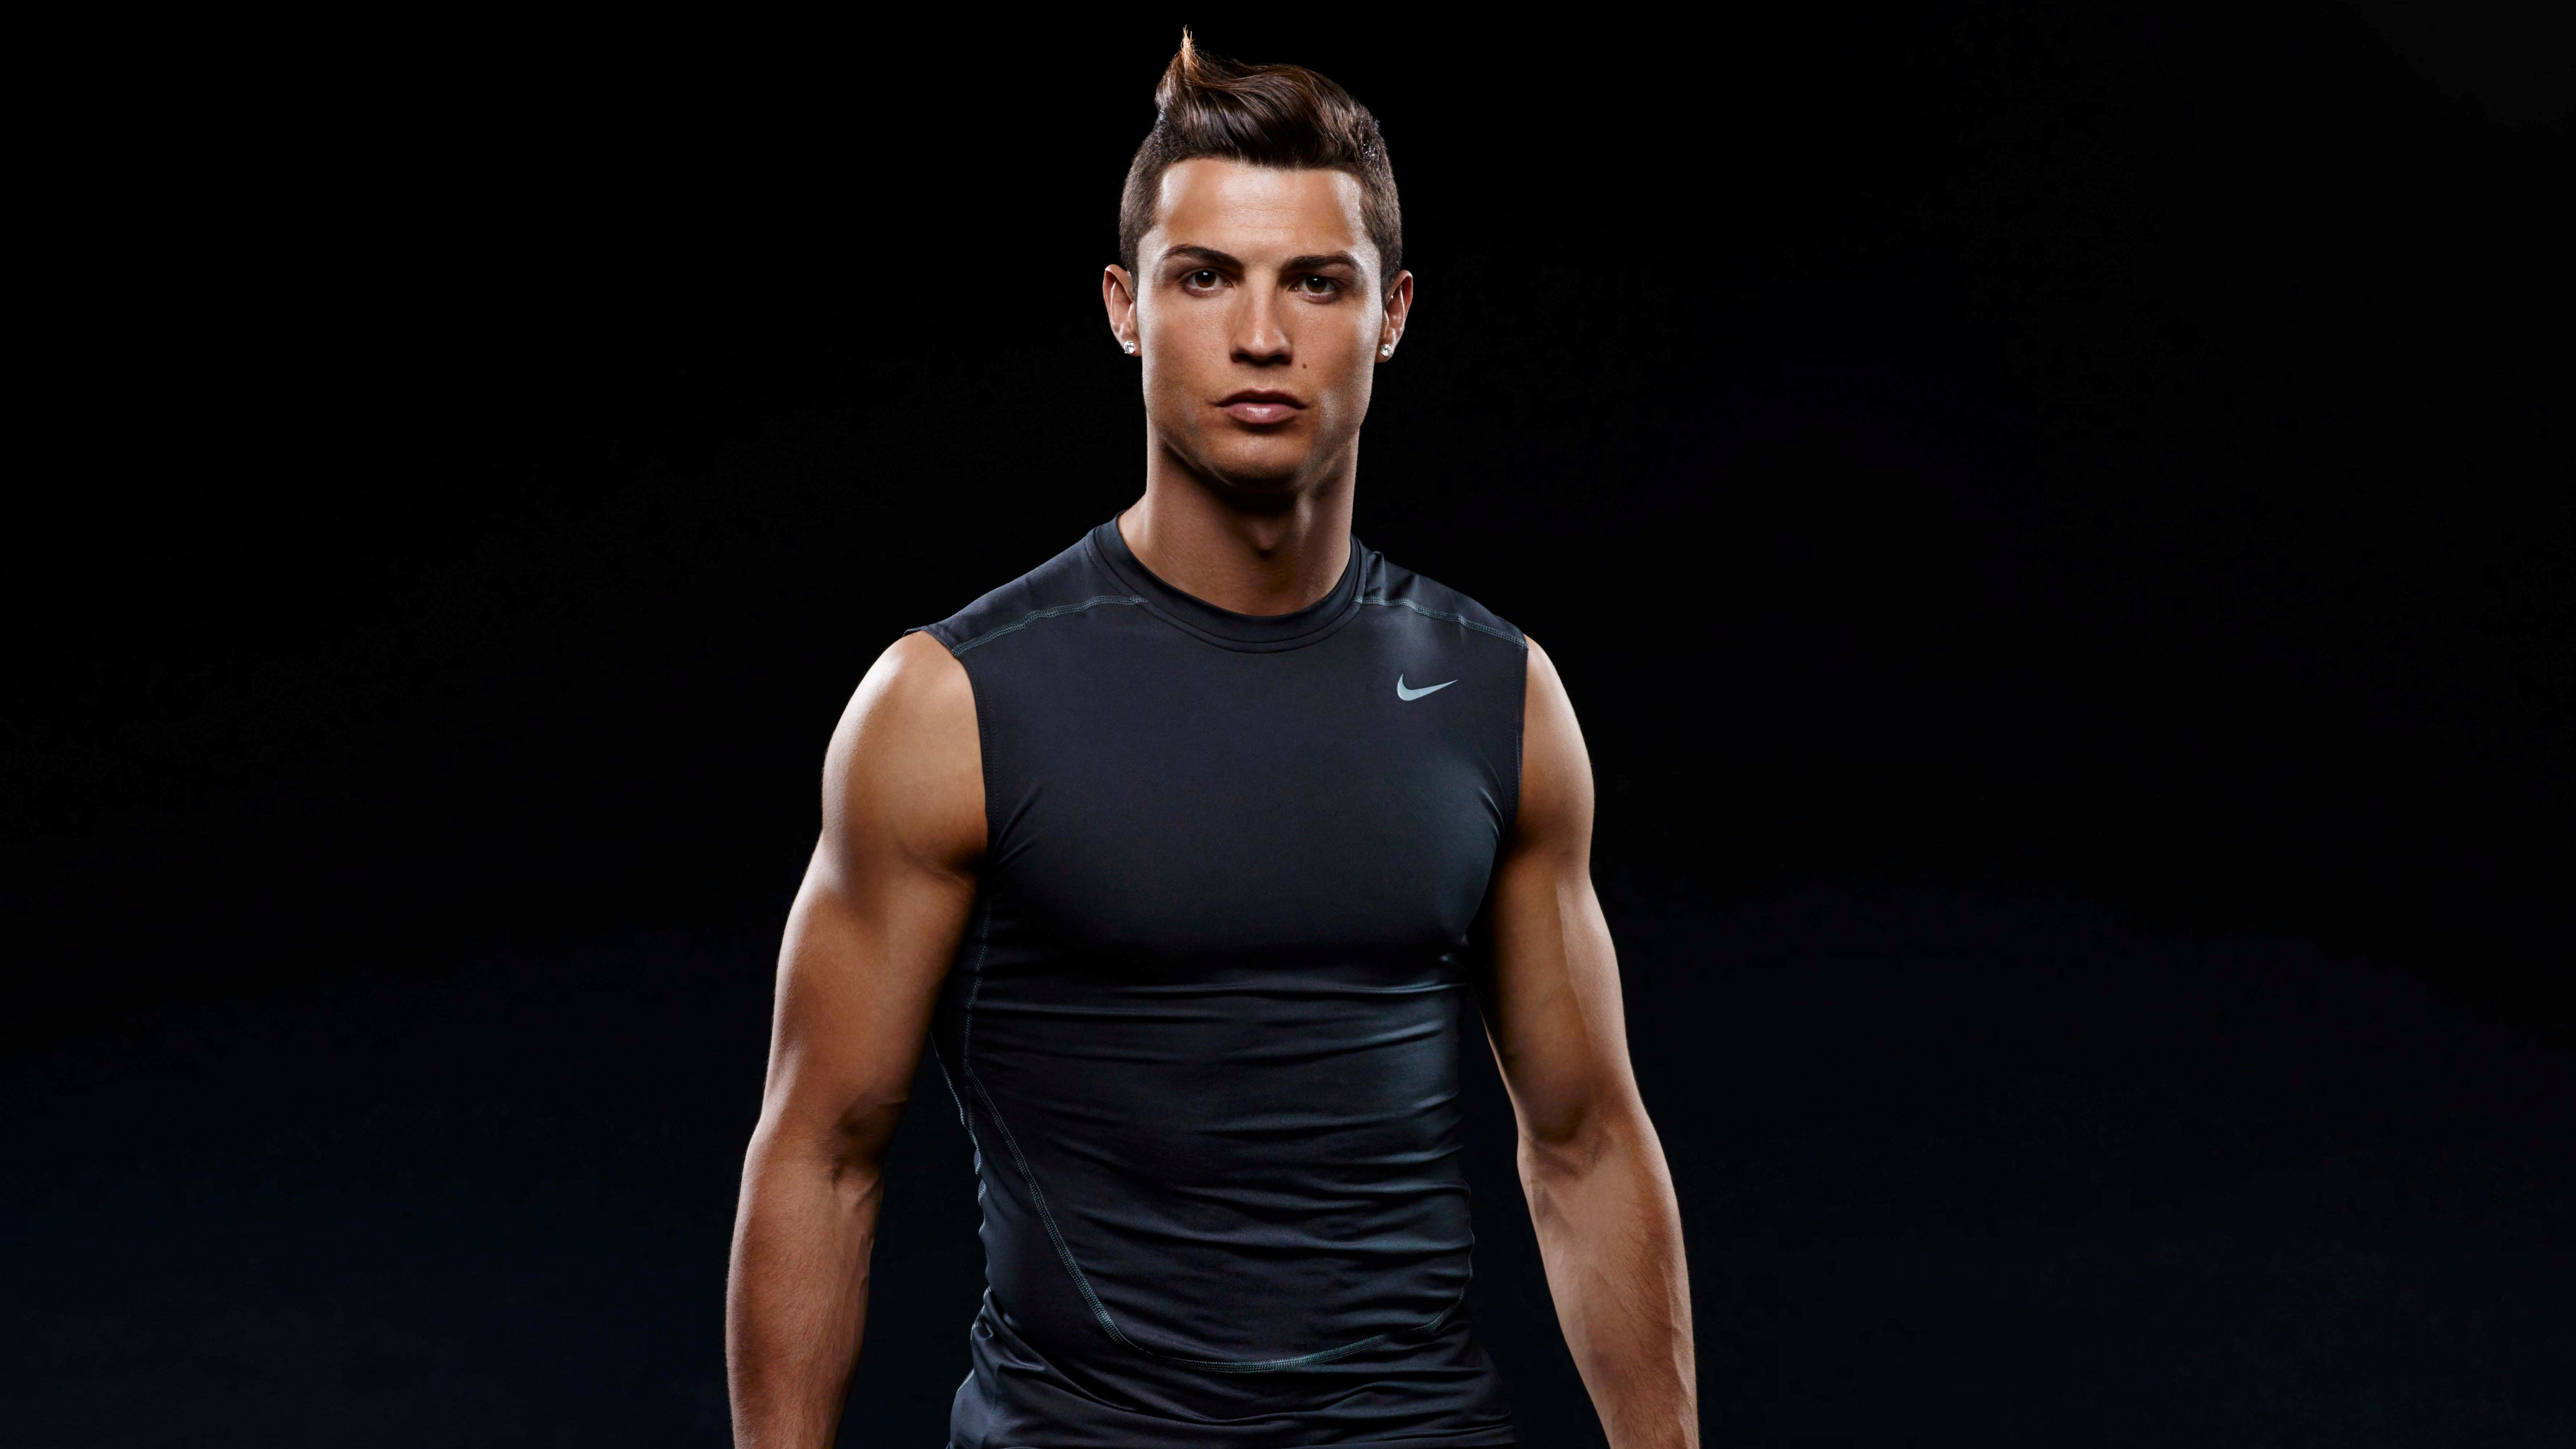 cristiano ronaldo 4k new 1547938887 - Cristiano Ronaldo 4k New - sports wallpapers, male celebrities wallpapers, hd-wallpapers, football wallpapers, cristiano ronaldo wallpapers, boys wallpapers, 4k-wallpapers